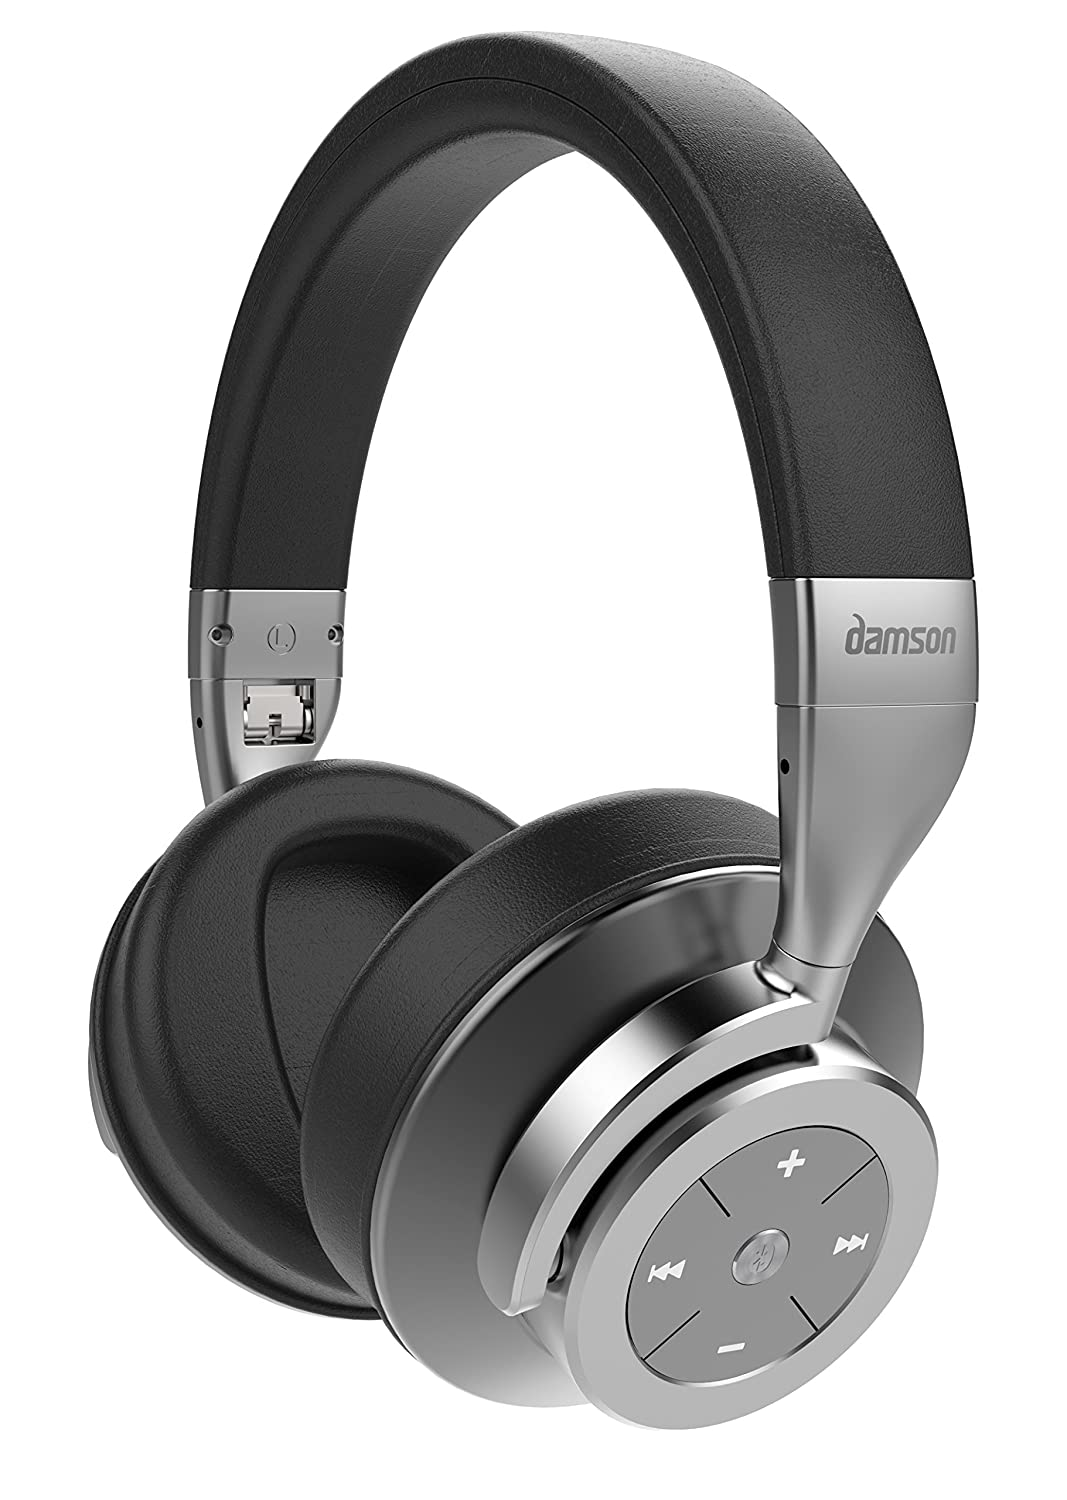 Damson HeadSpace - Wireless Bluetooth Noise Cancelling Over the Ears Headphones - Includes Micro-USB Charging Cable, 3.5mm Auxiliary Cable, and Case